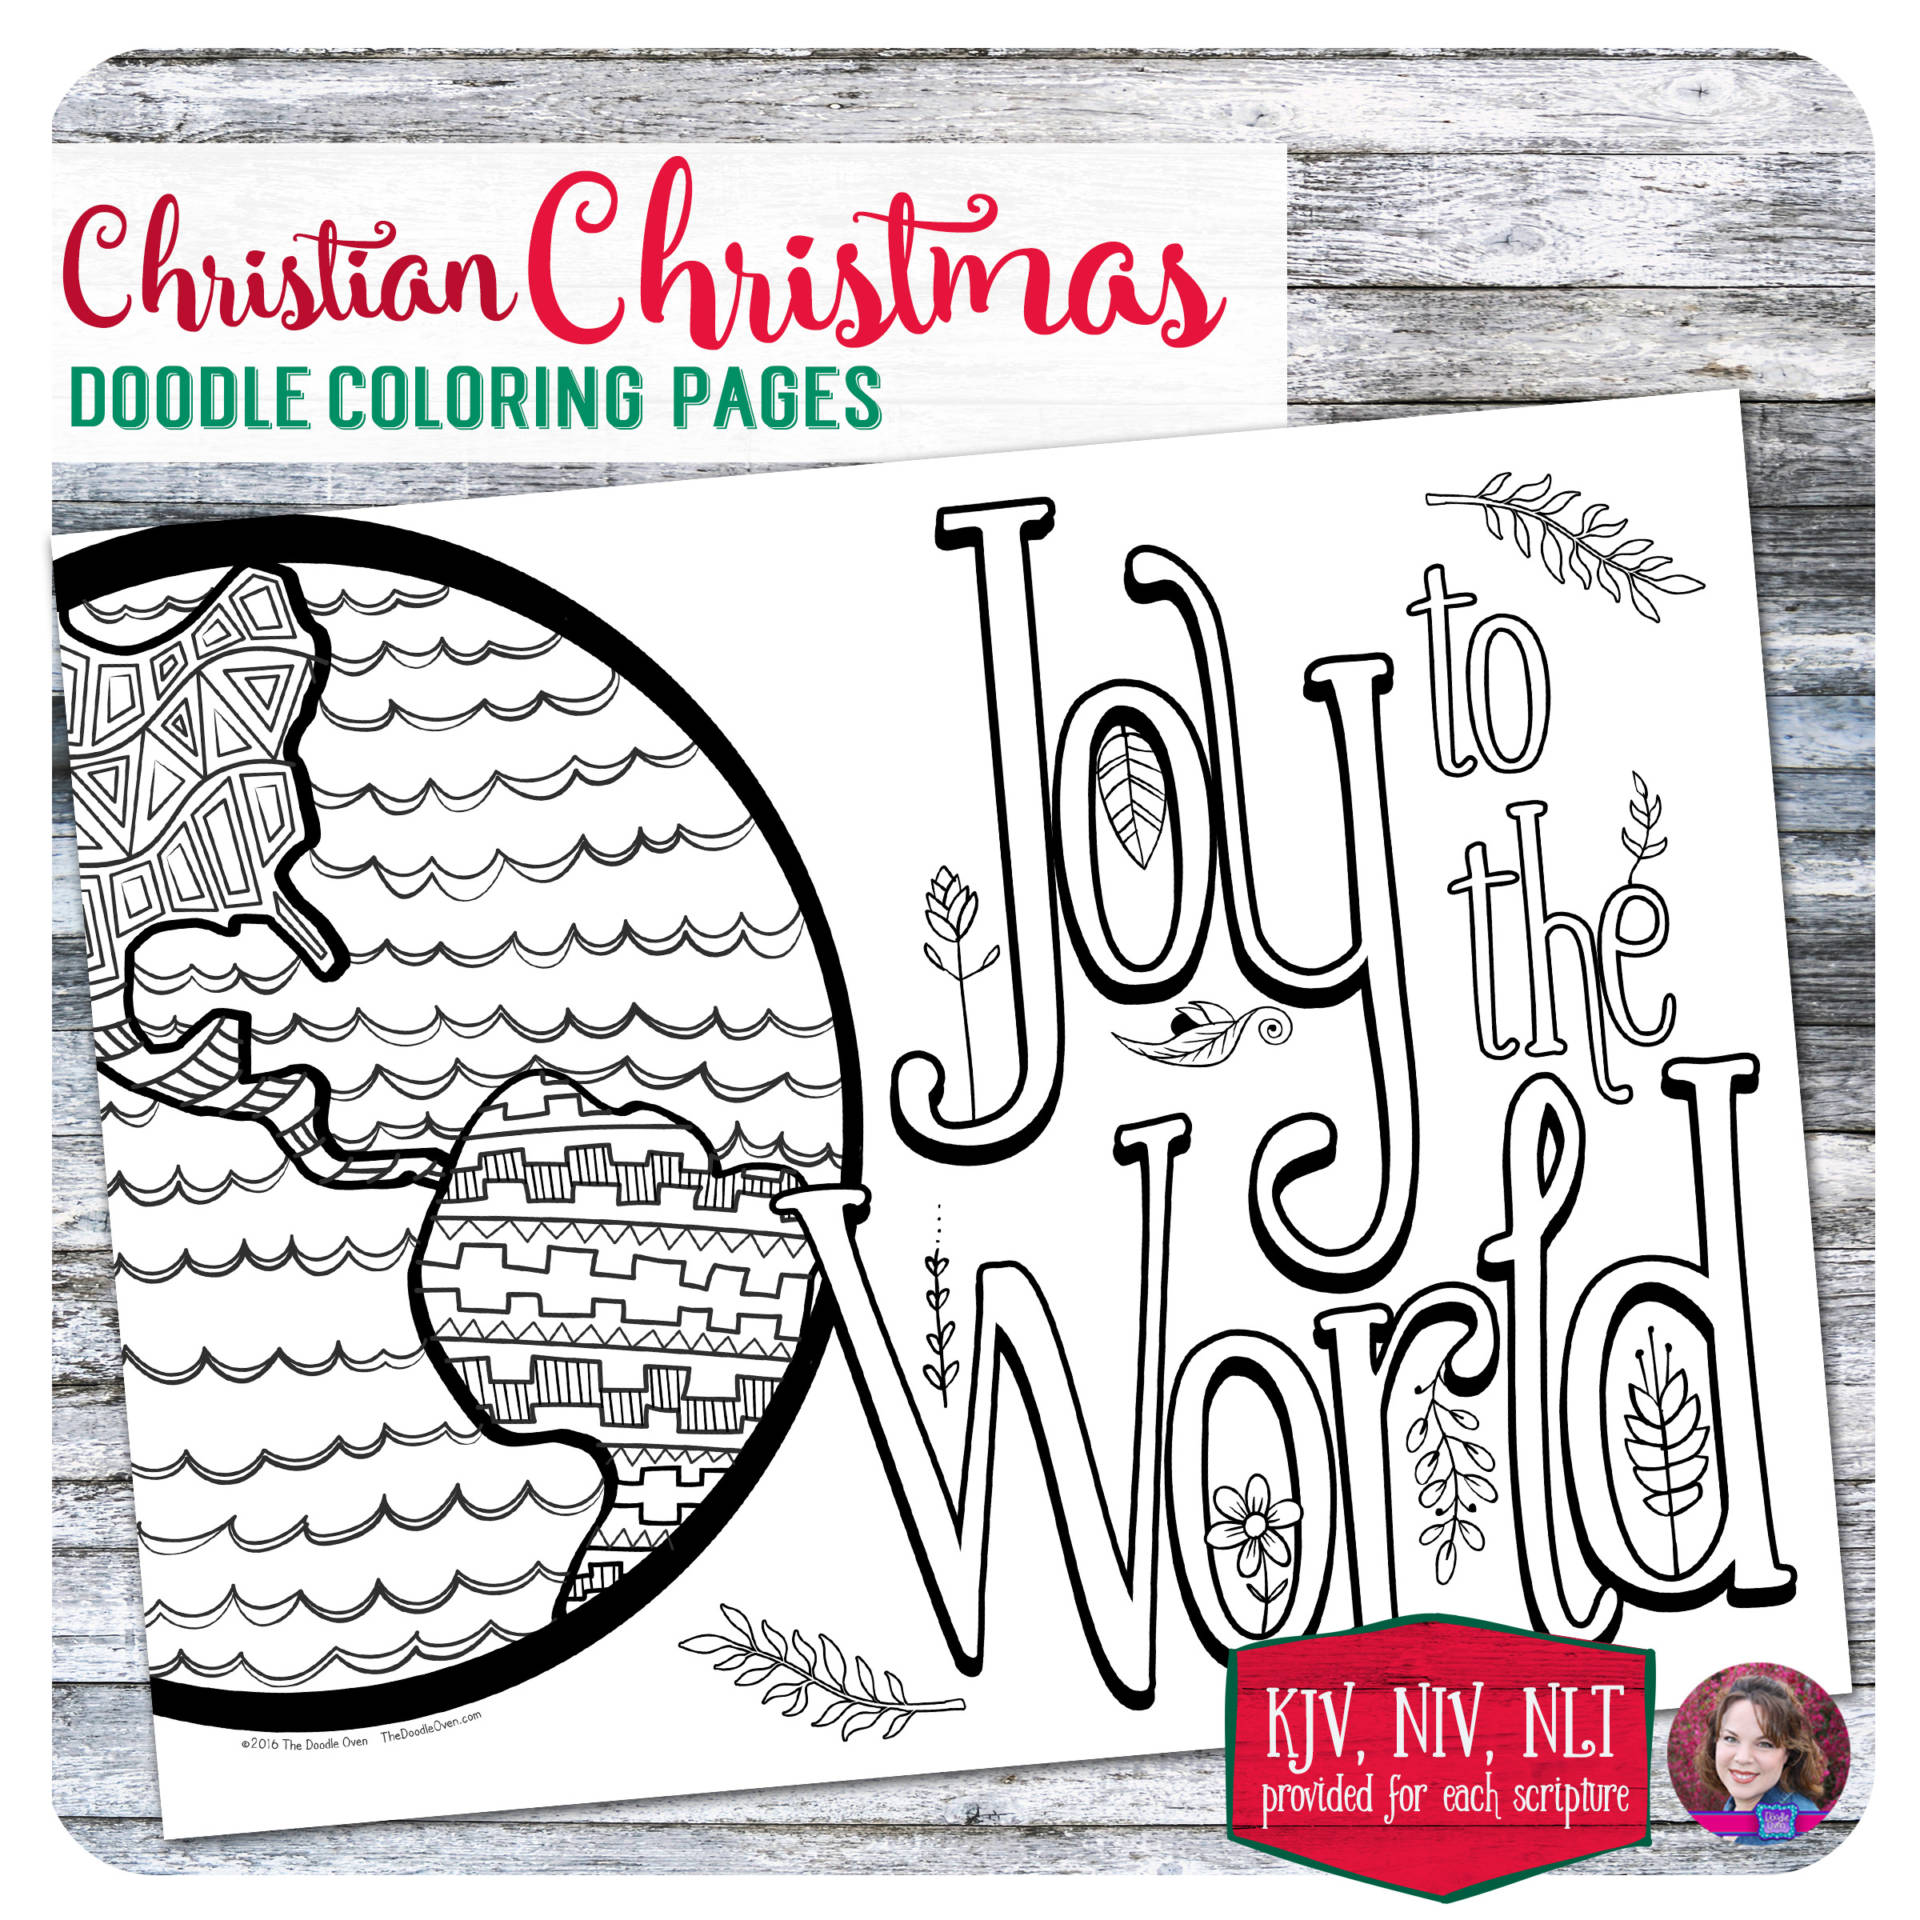 Christian Christmas Doodle Coloring Pages 6 Designs